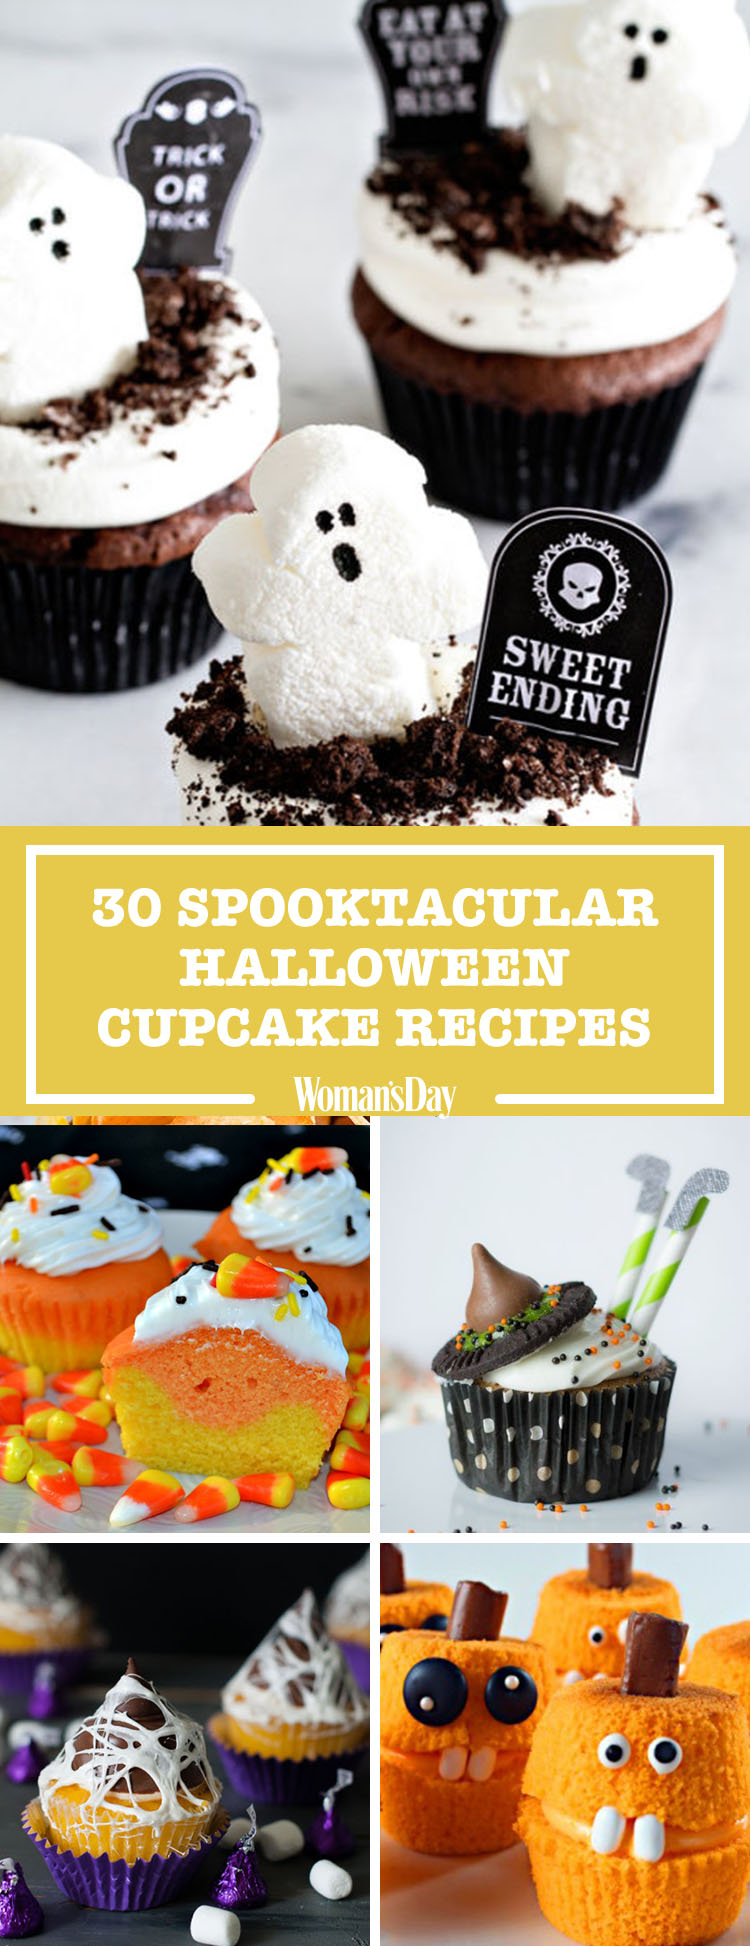 35 halloween cupcake ideas recipes for cute and scary halloween desserts - Halloween Cupcake Decorating